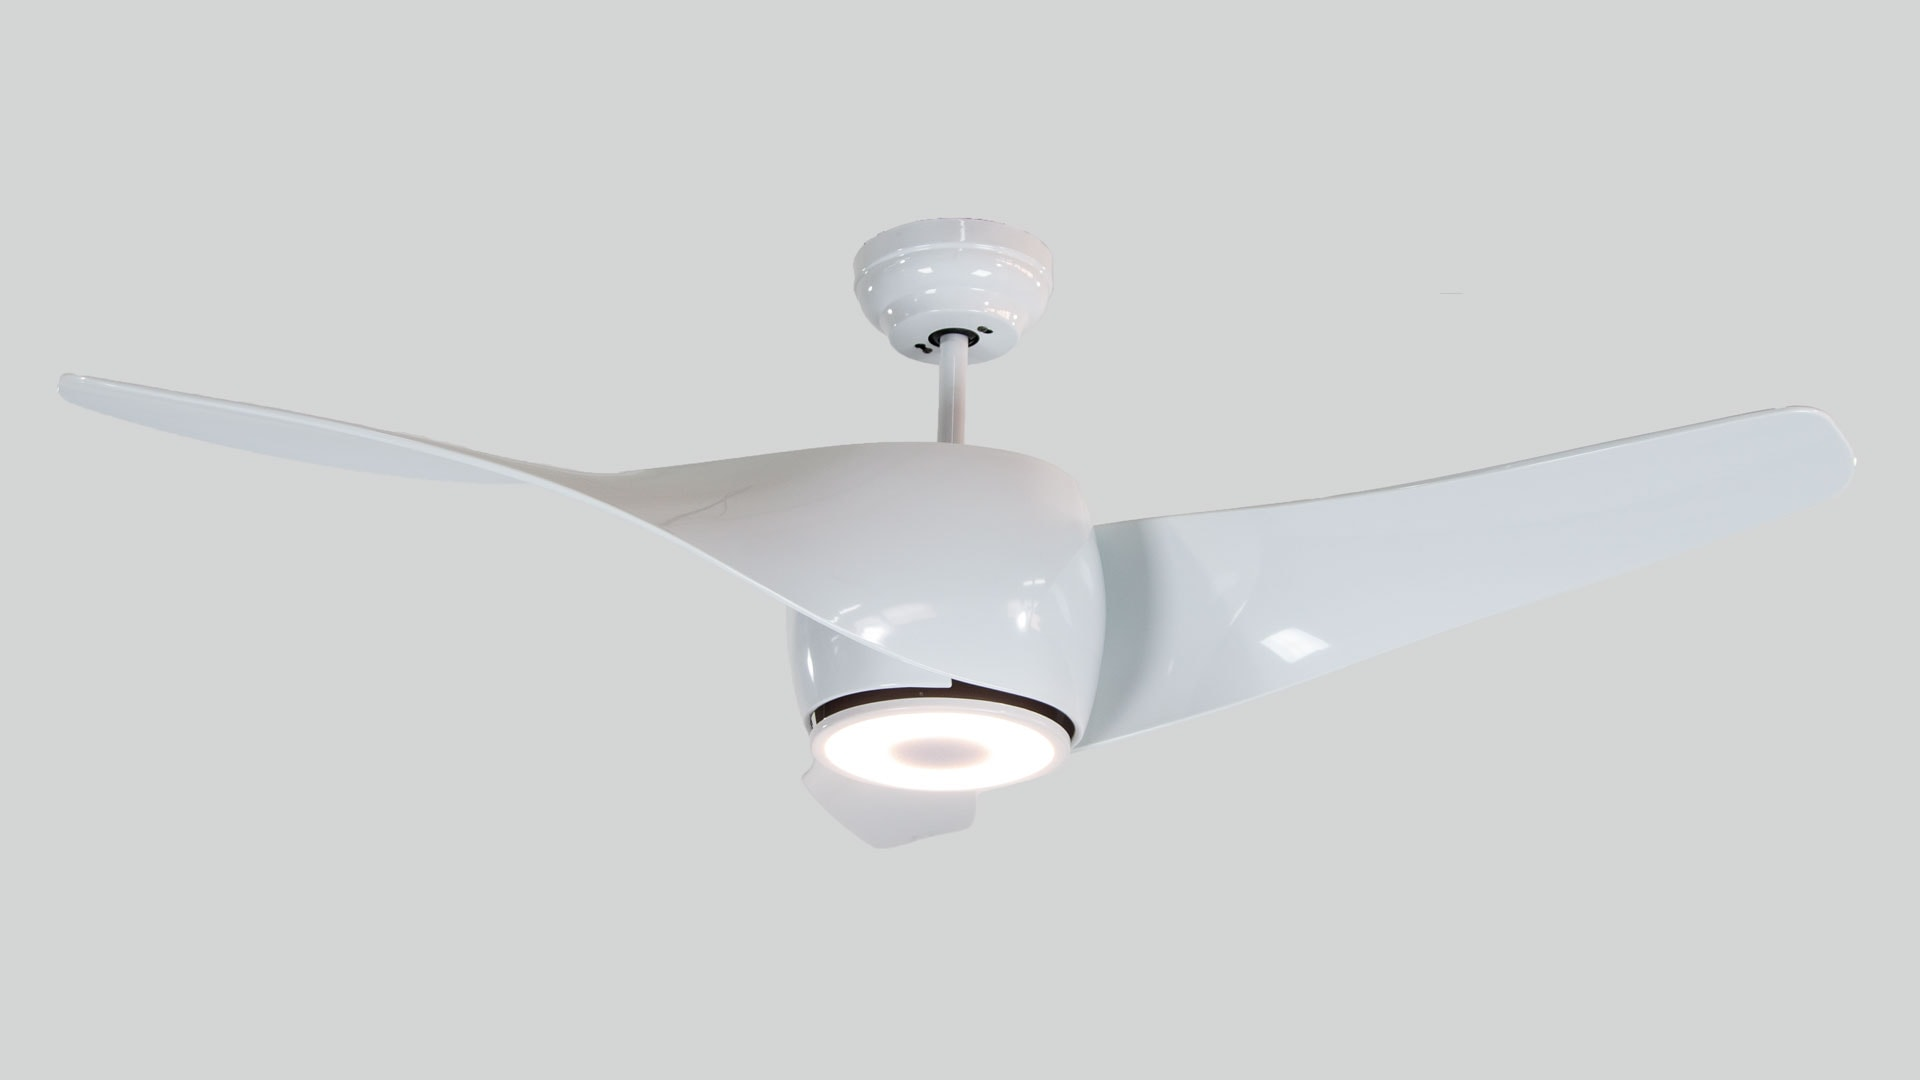 Profan Active - White, With Light (Bluetooth Speaker) Ceiling Fan